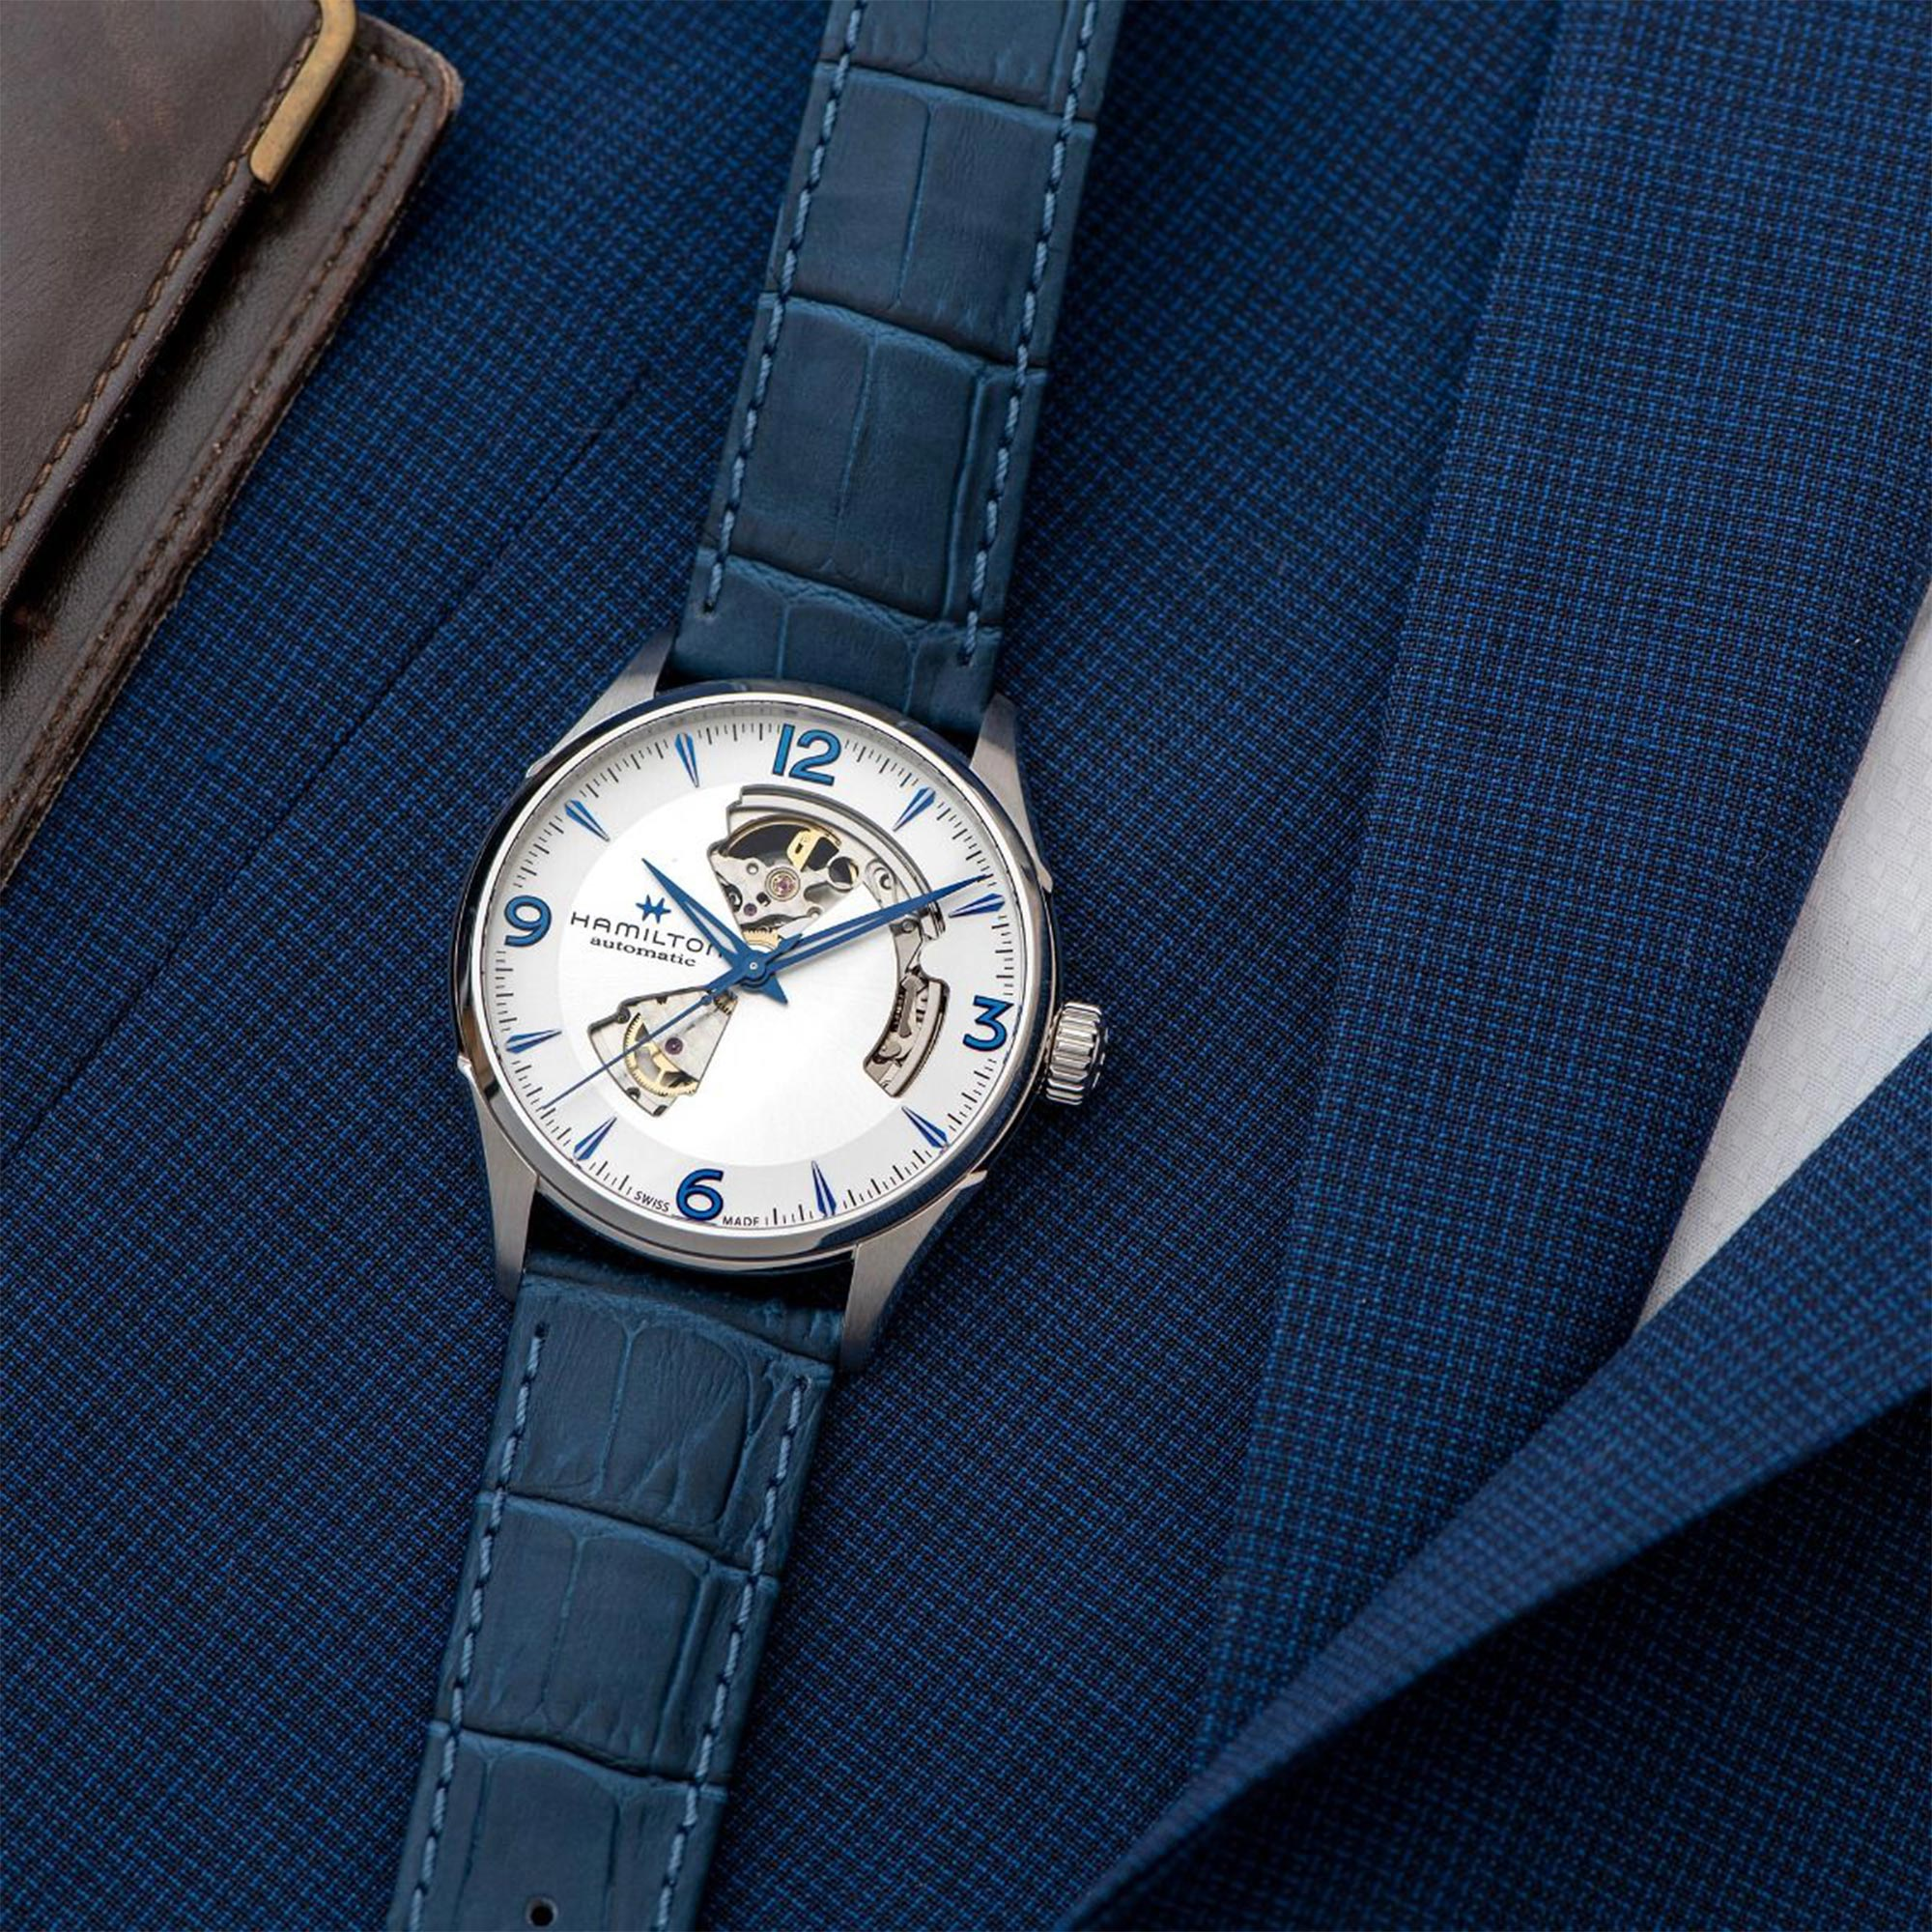 Hamilton Jazzmaster Open Heart Automatic Silver Dial Blue Leather Strap Men's Watch H32705651